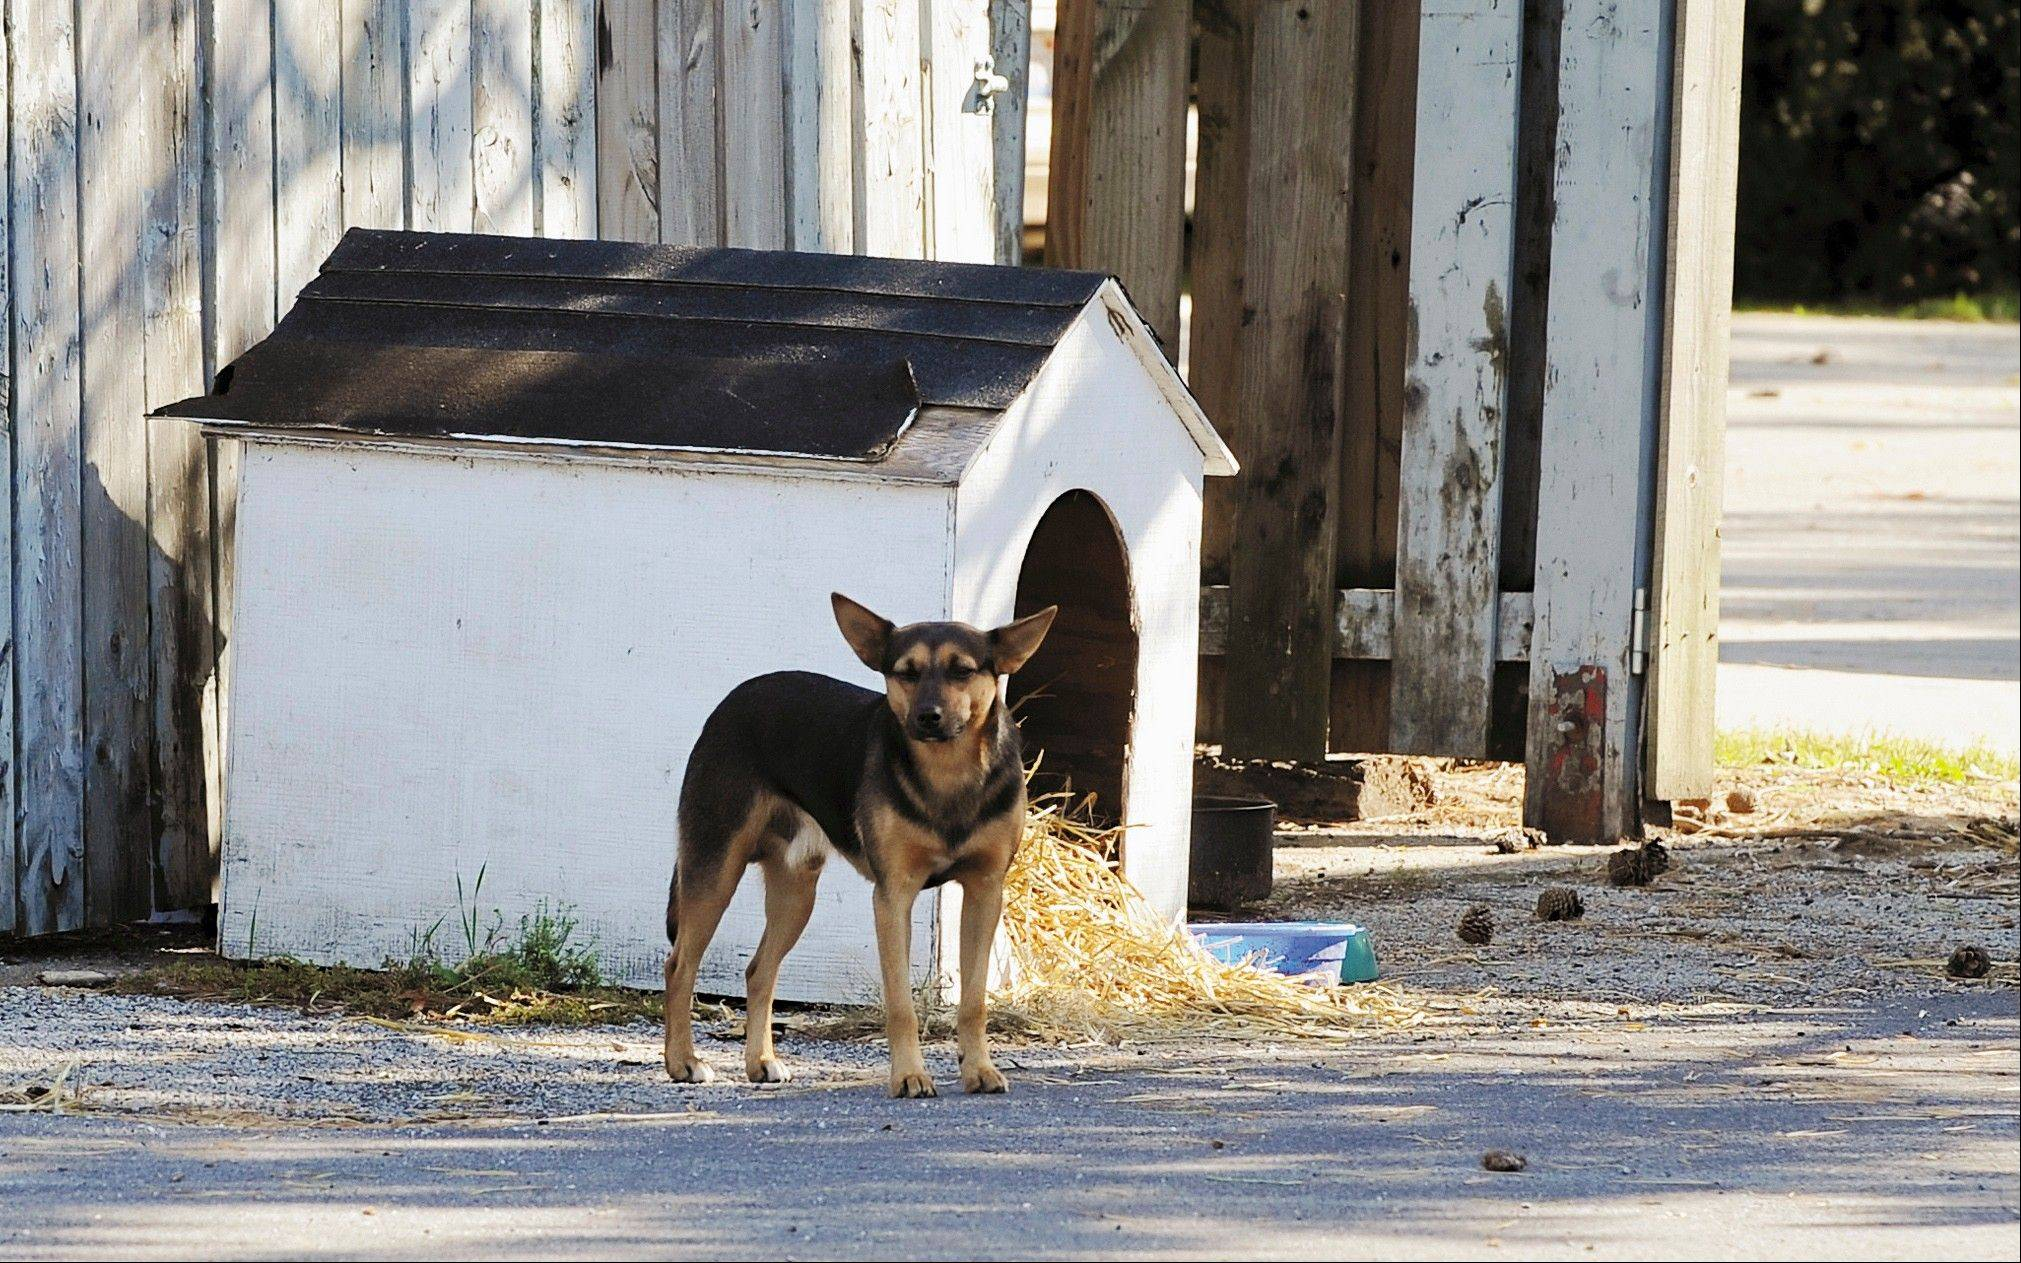 Max, a stray dog, watches from a distance at his dog house near Smoky's House BBQ restaurant in Charleston.